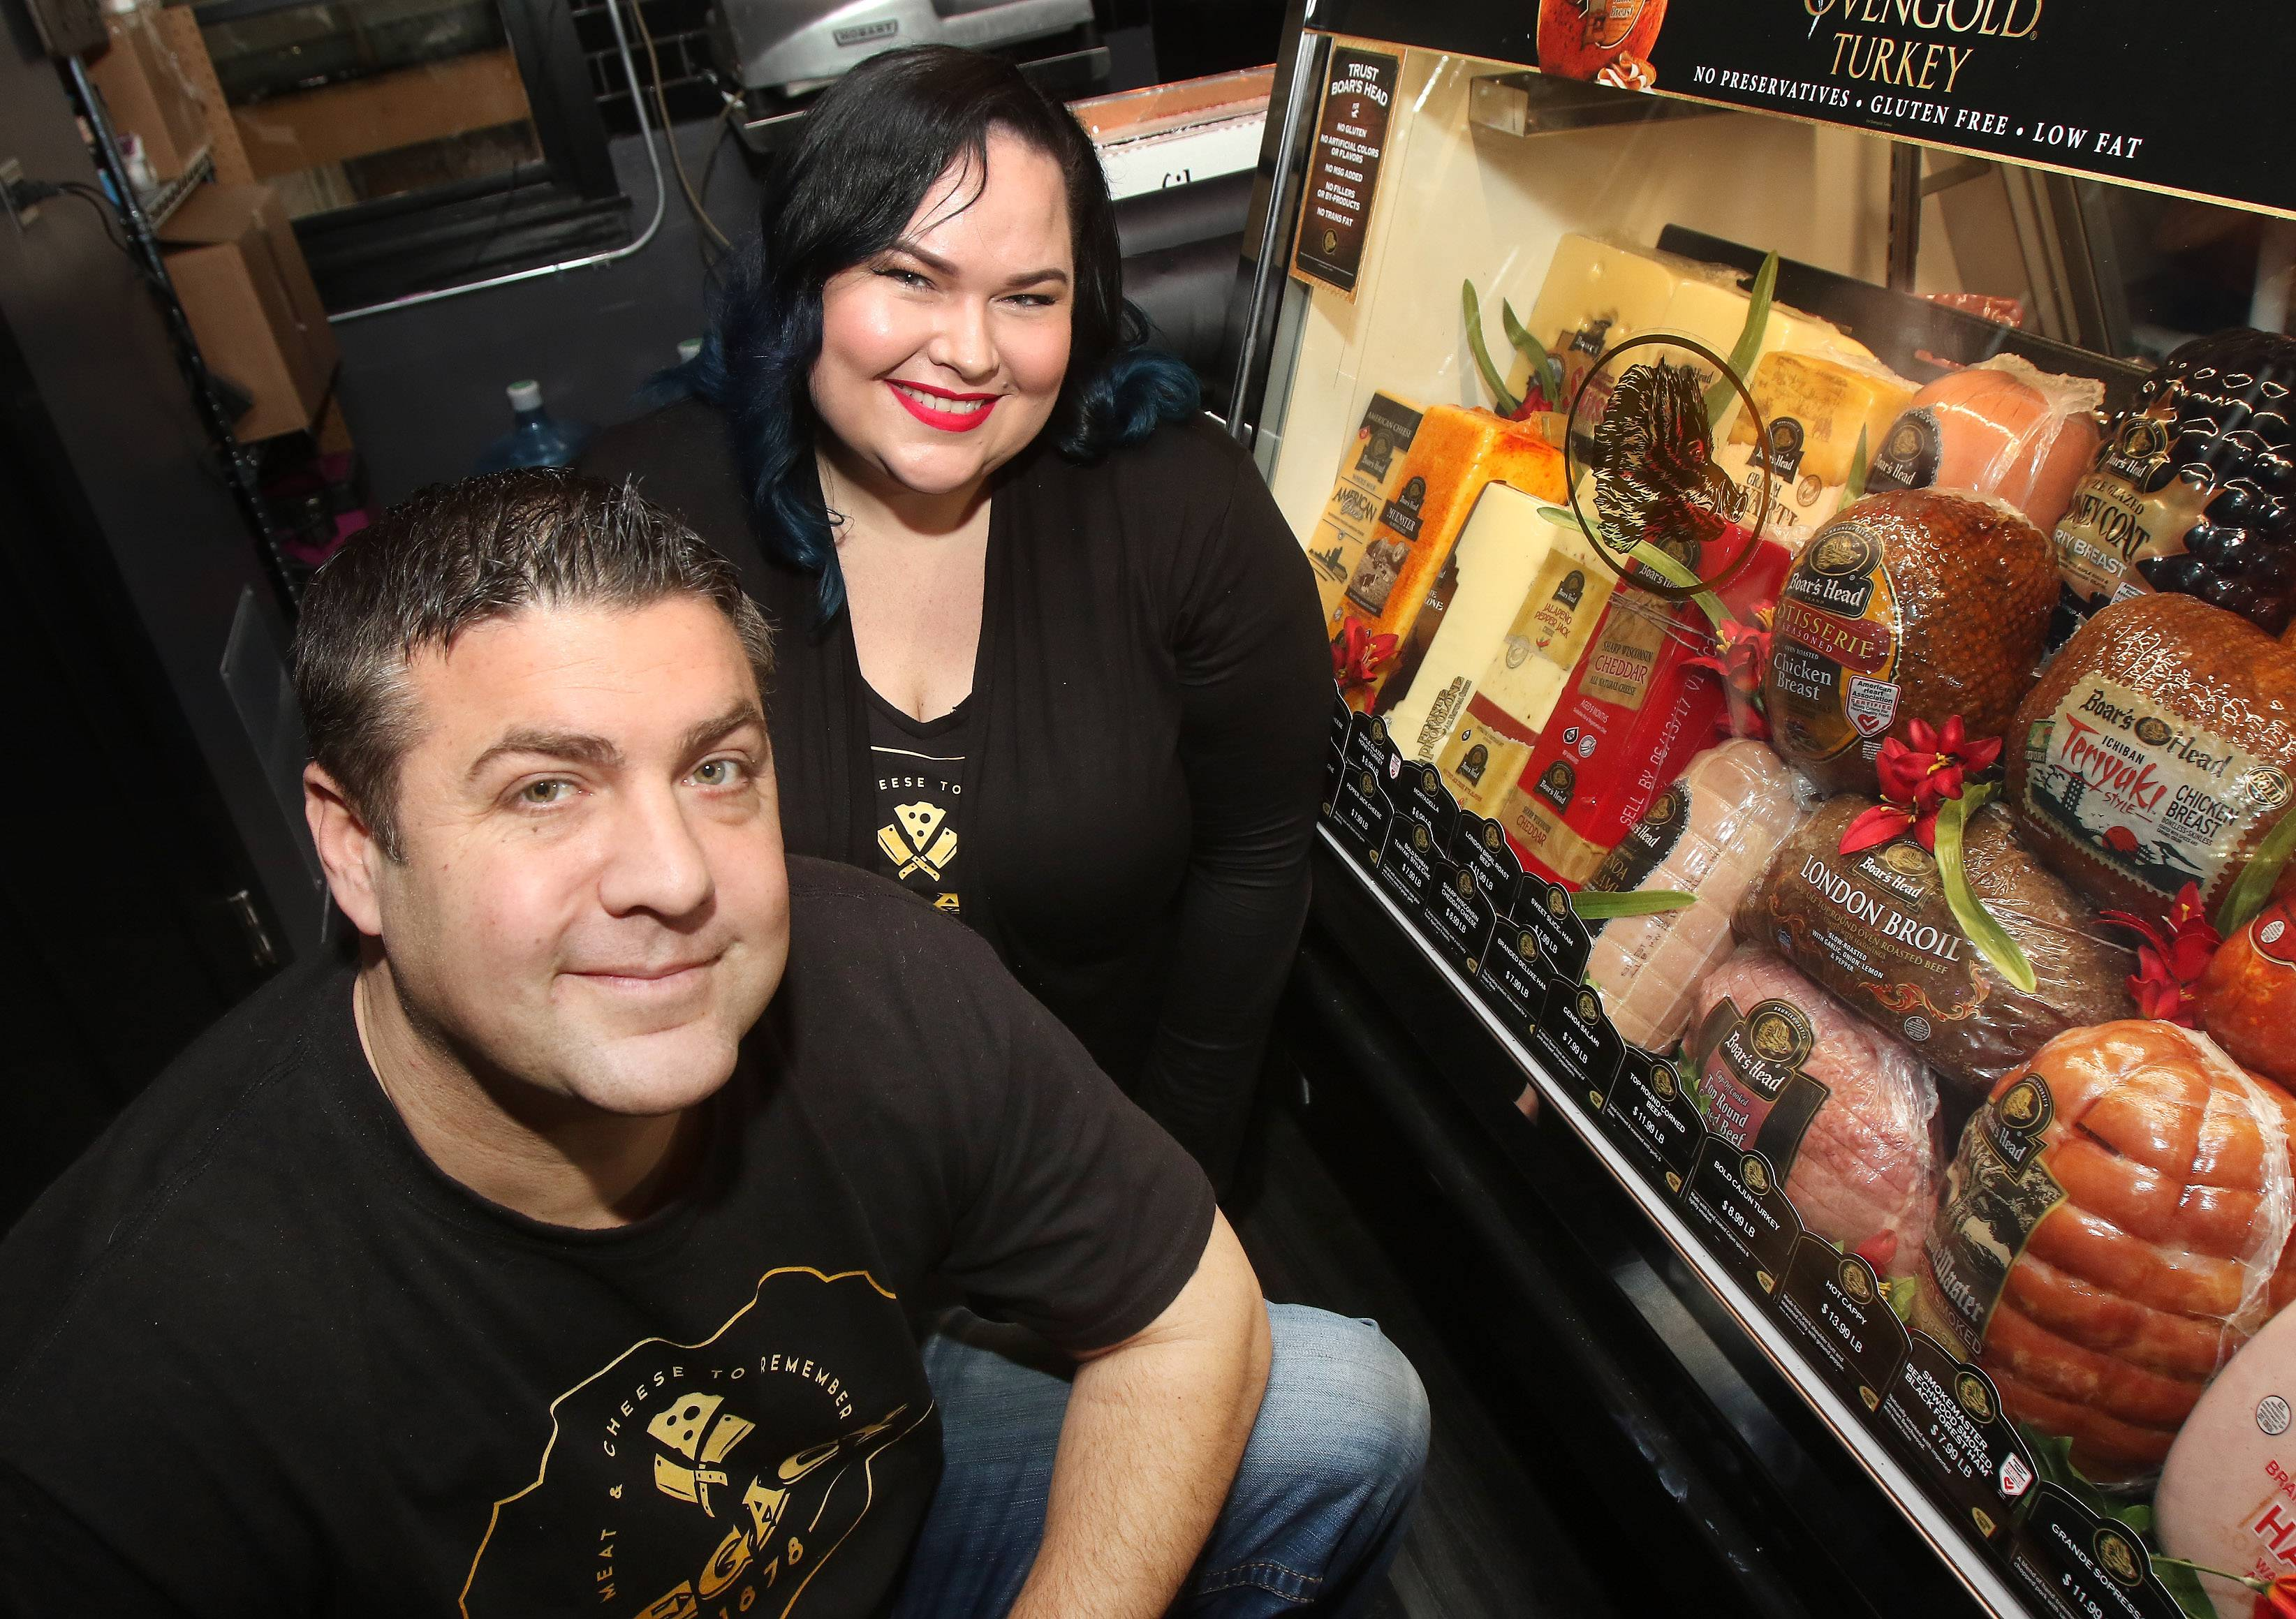 Entrepreneurs Carl Waggoner and Megan McCracken have opened a meat and cheese shop called Legacy 1878 in downtown Wauconda.